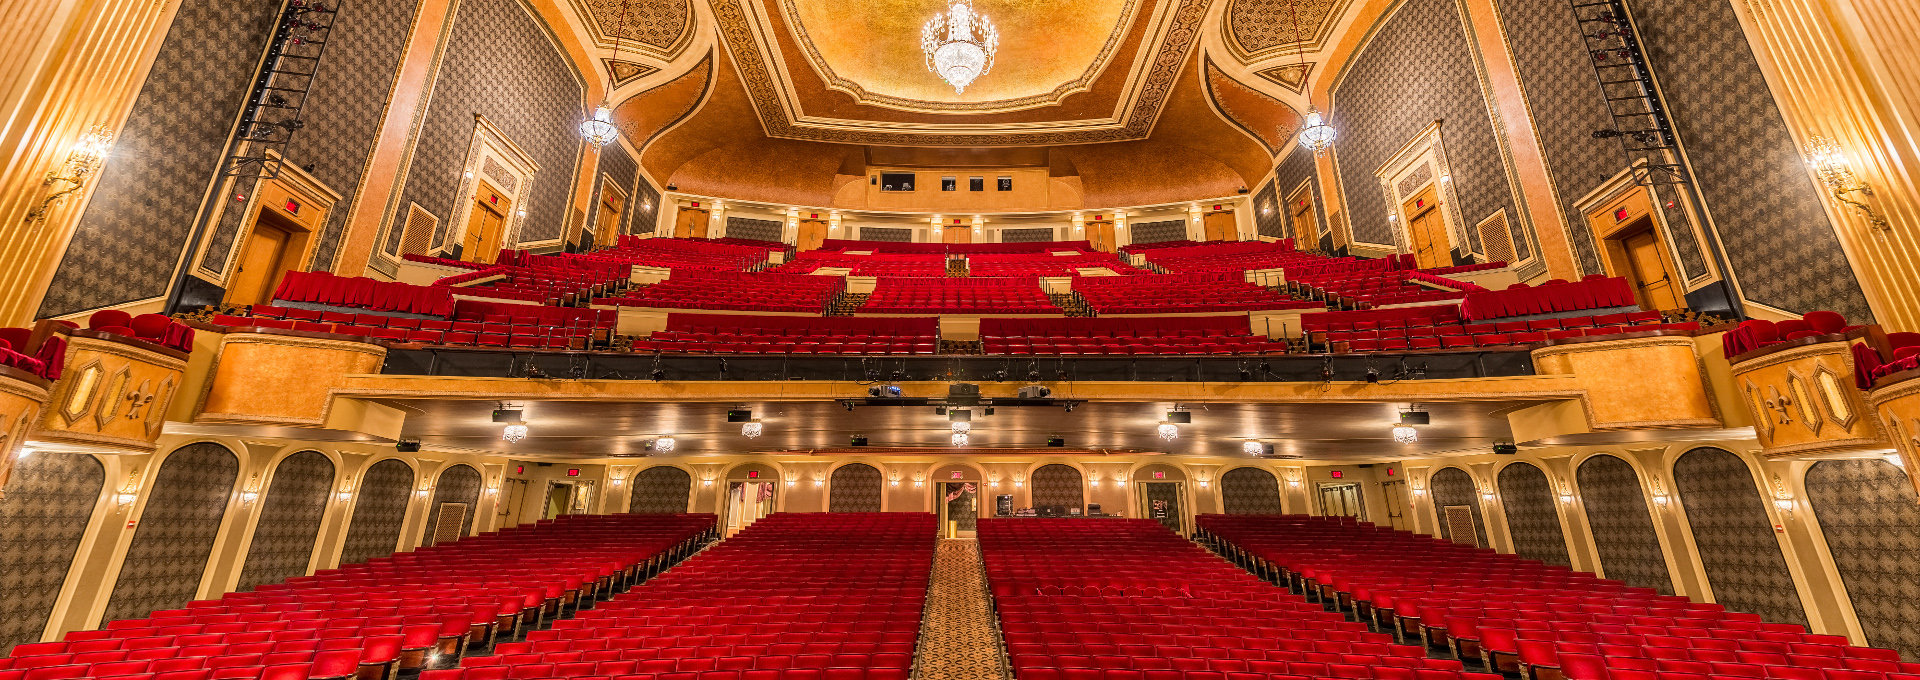 Sioux City Orpheum Theatre